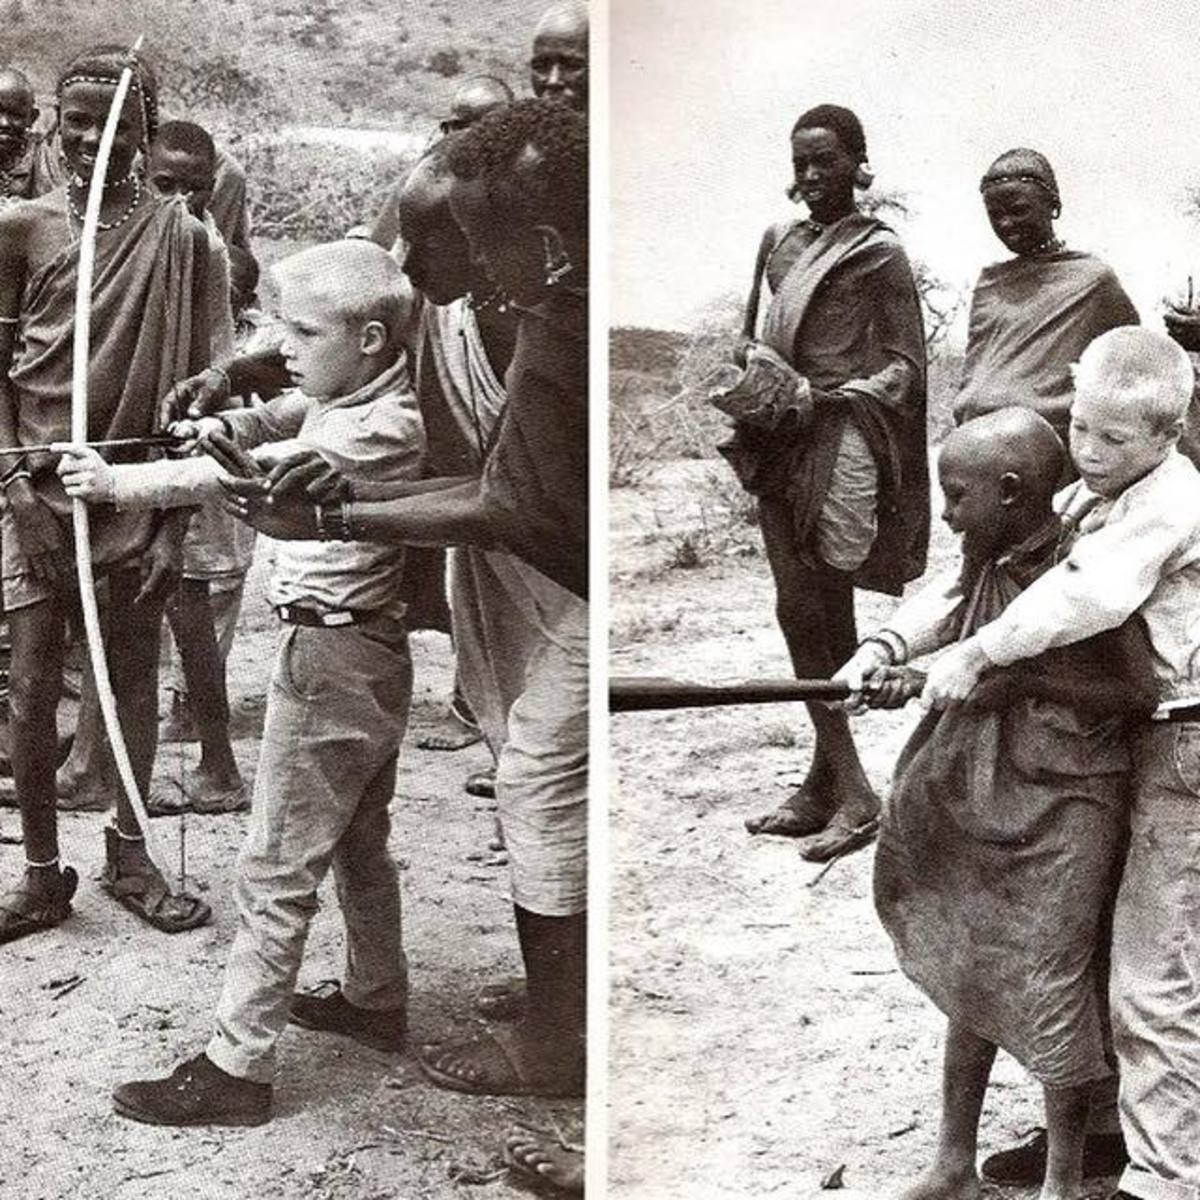 Kevin Gorman and his Masai friends exchanging expertise